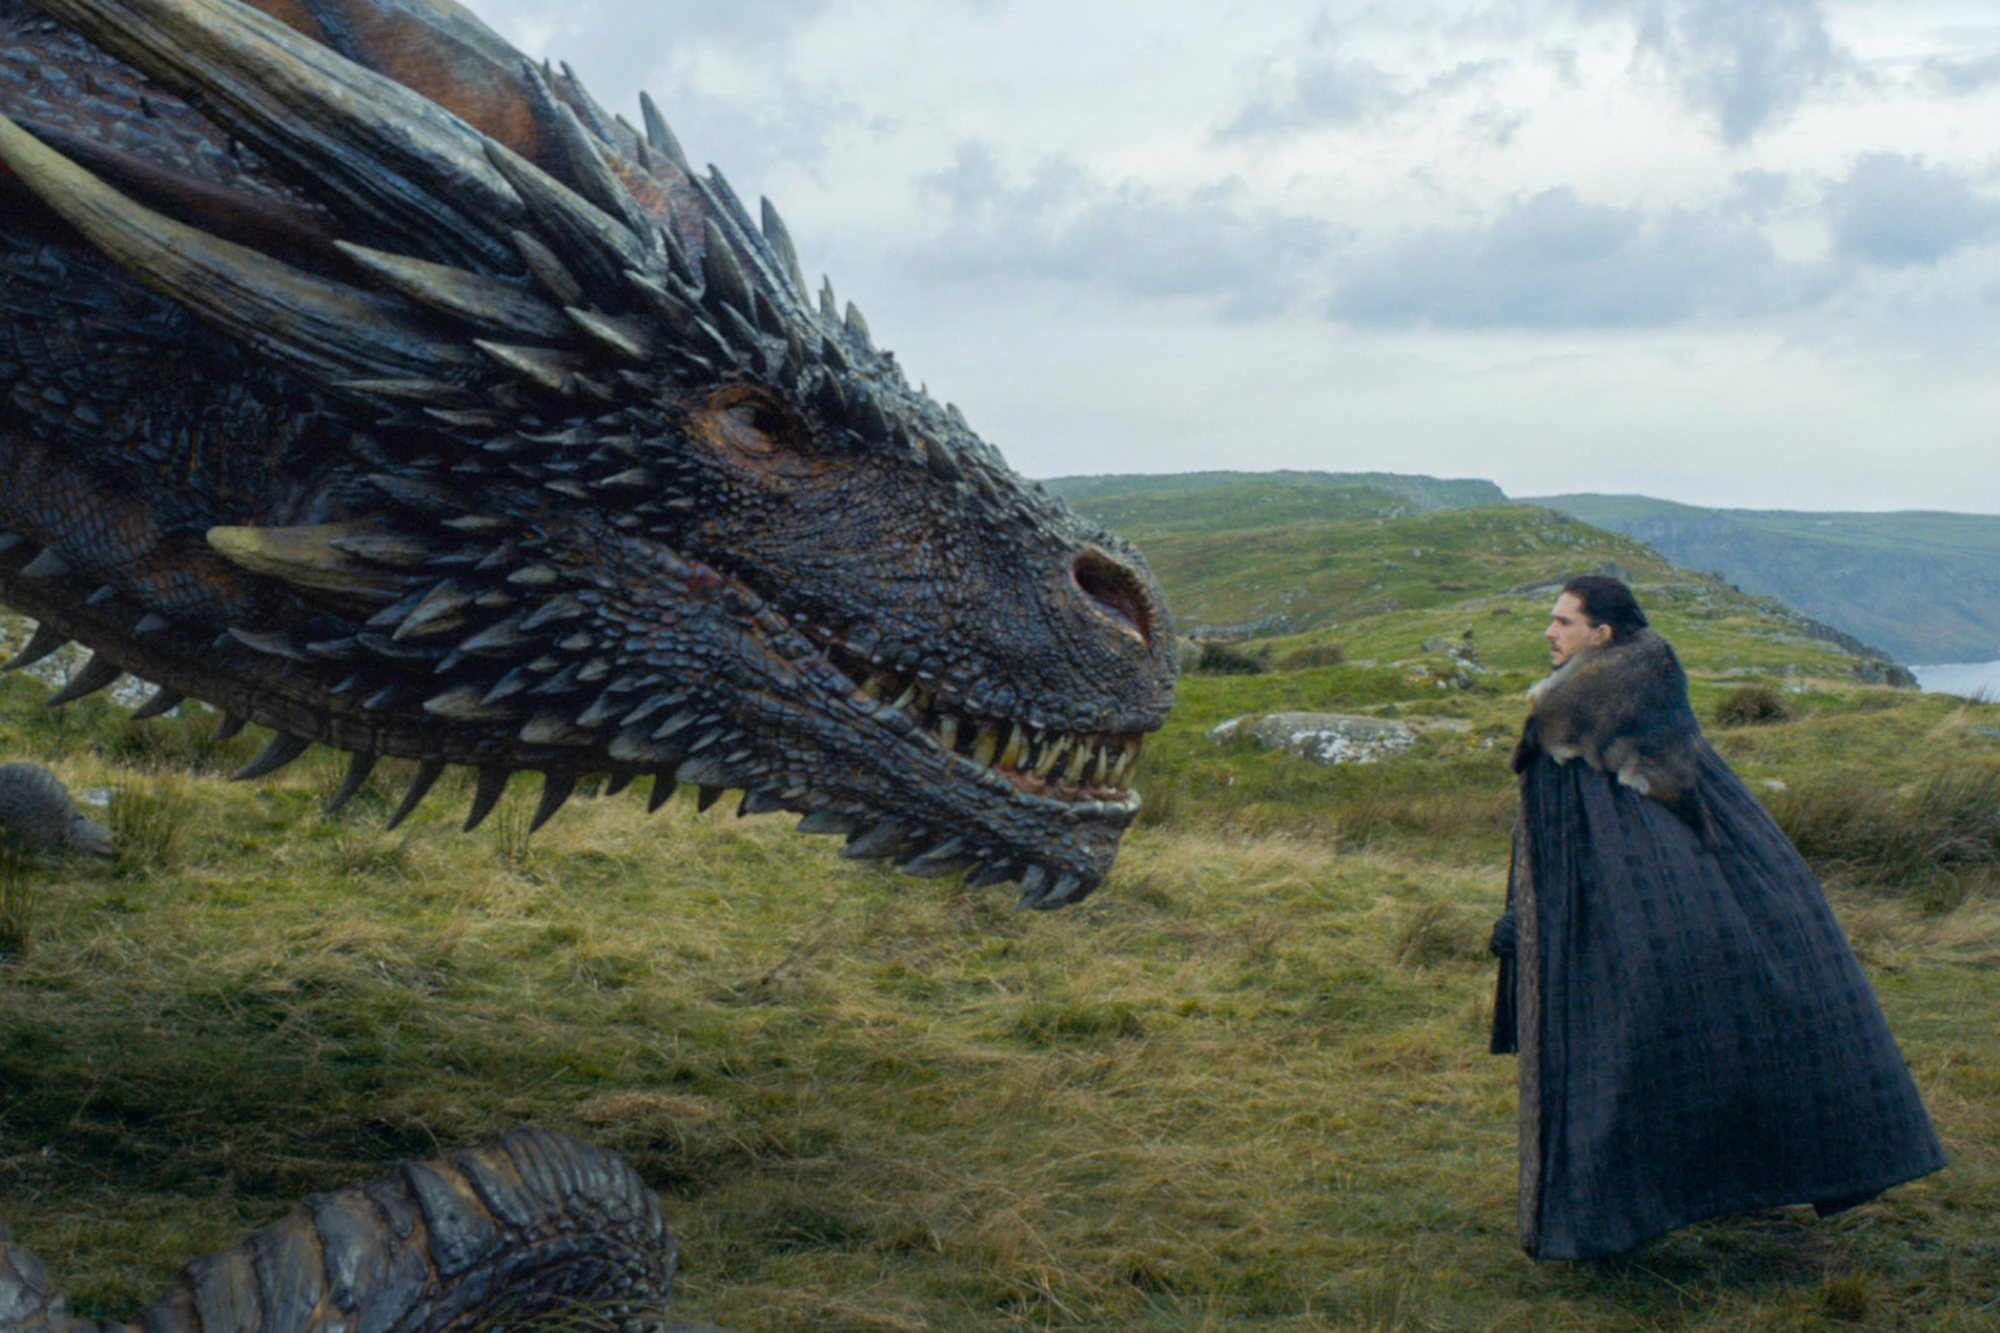 Ostwacht Game of Thrones Staffel 7 Episode 5 S7E4 Eastwatch Jon Drogon